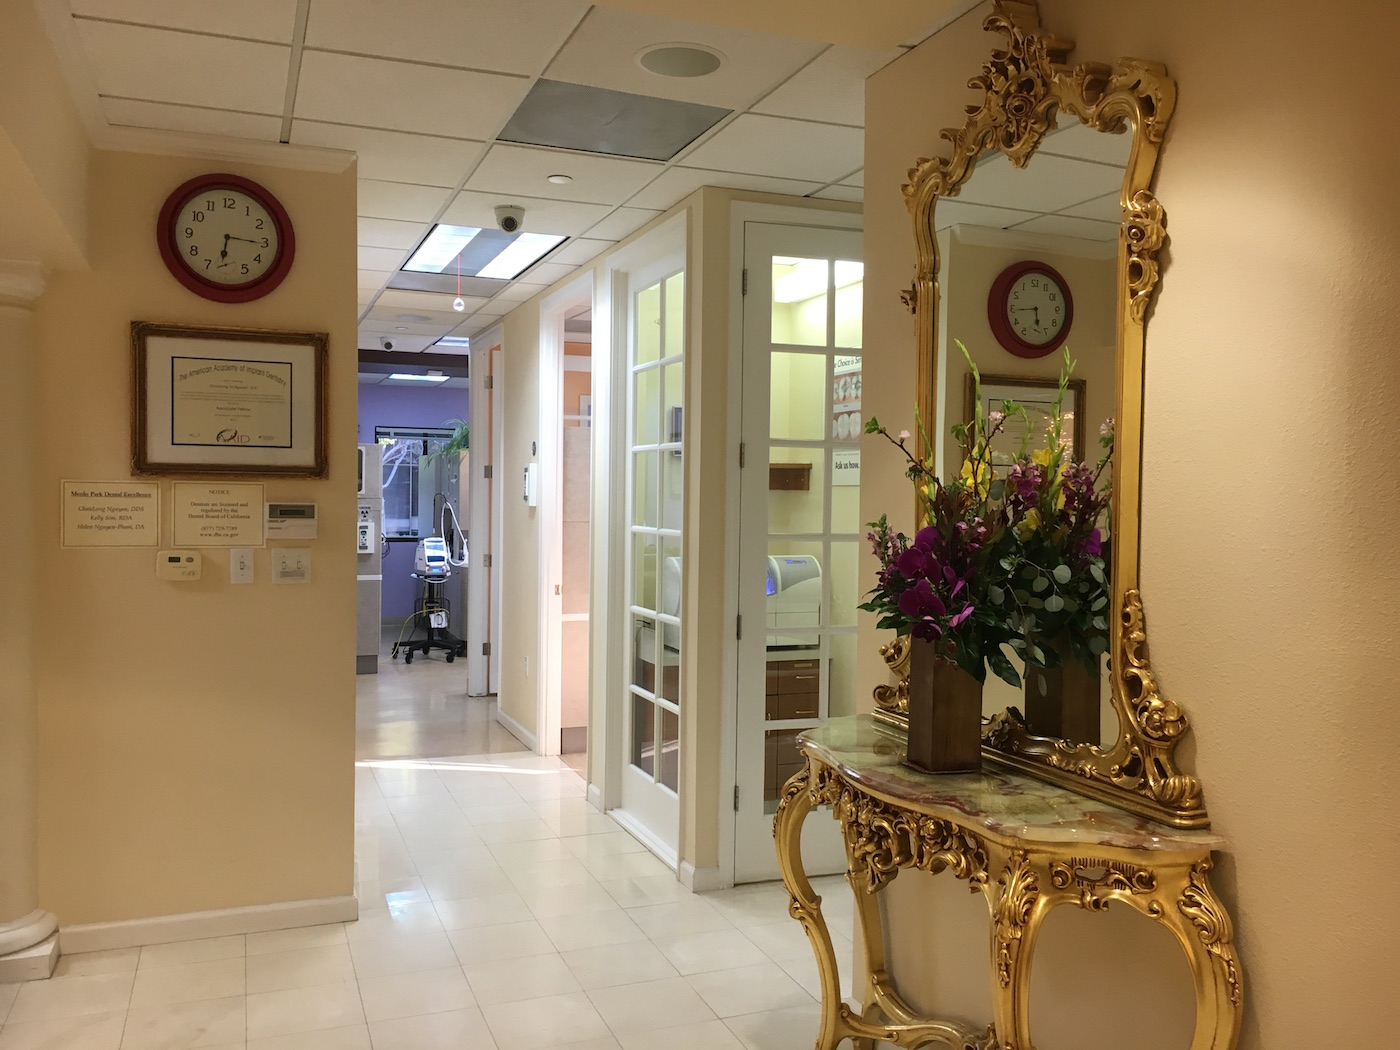 Menlo Park Dental Office